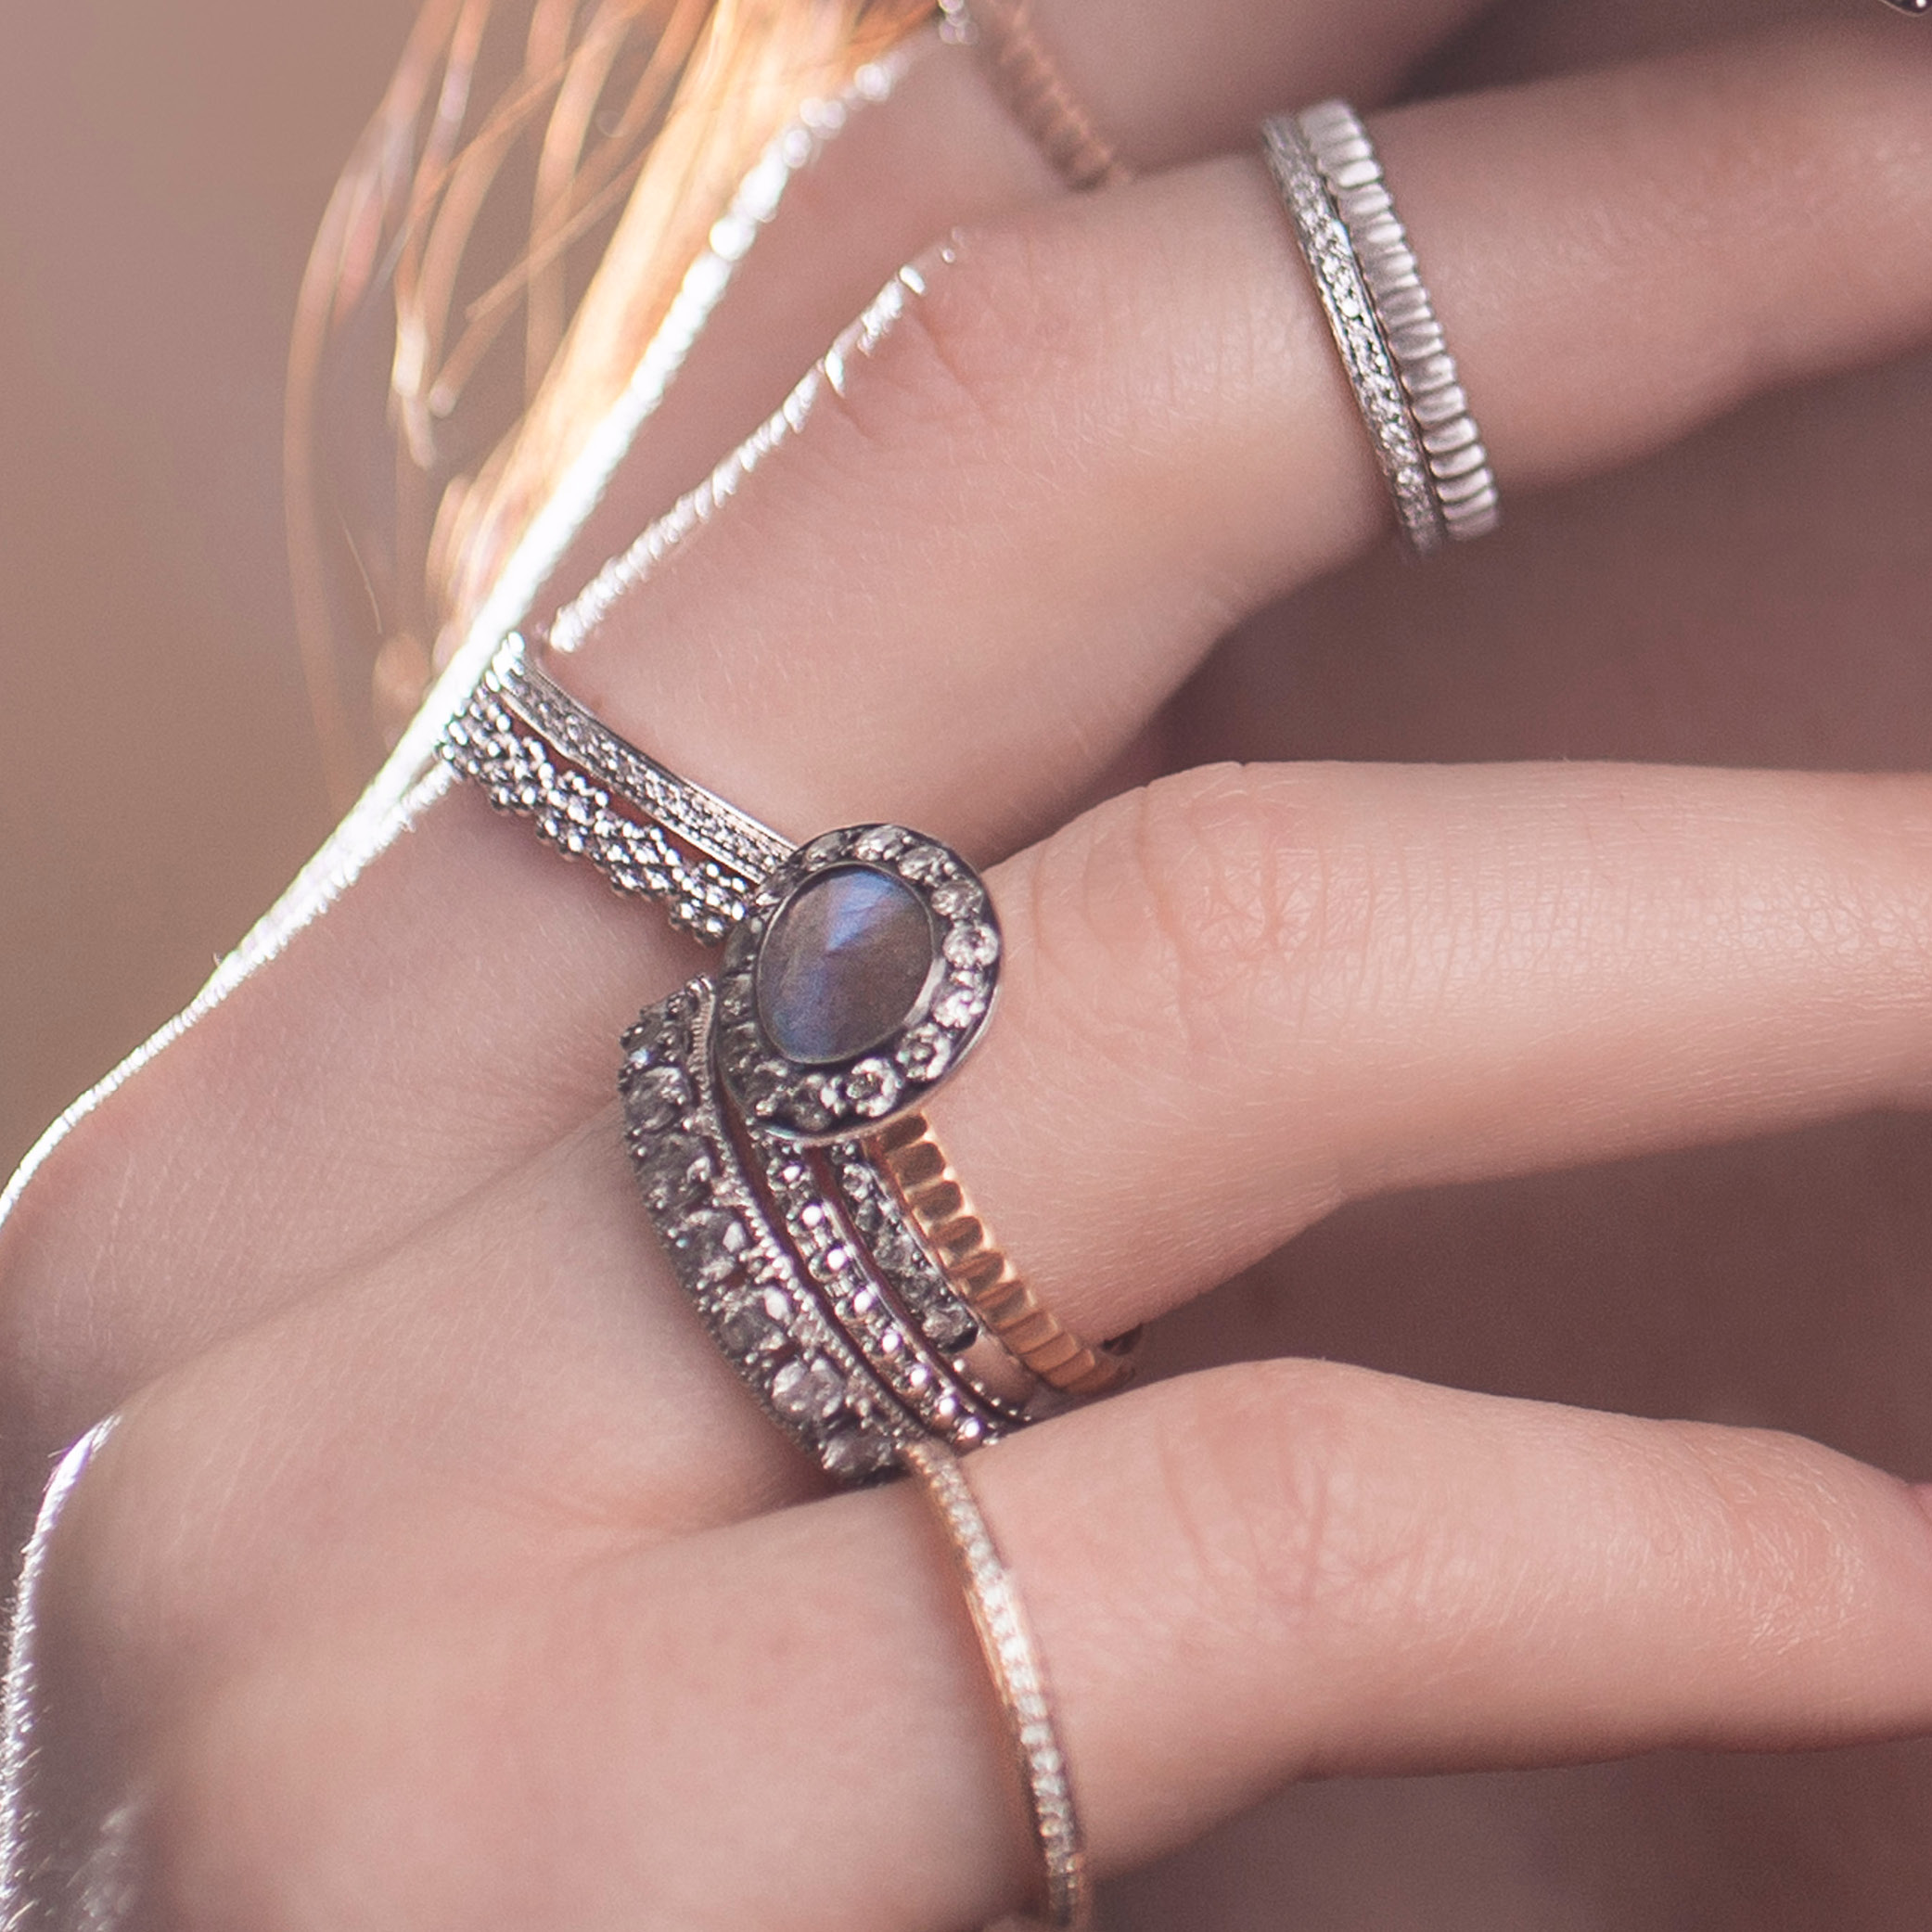 What To Look For In An Eternity Ring - England Lifestyle